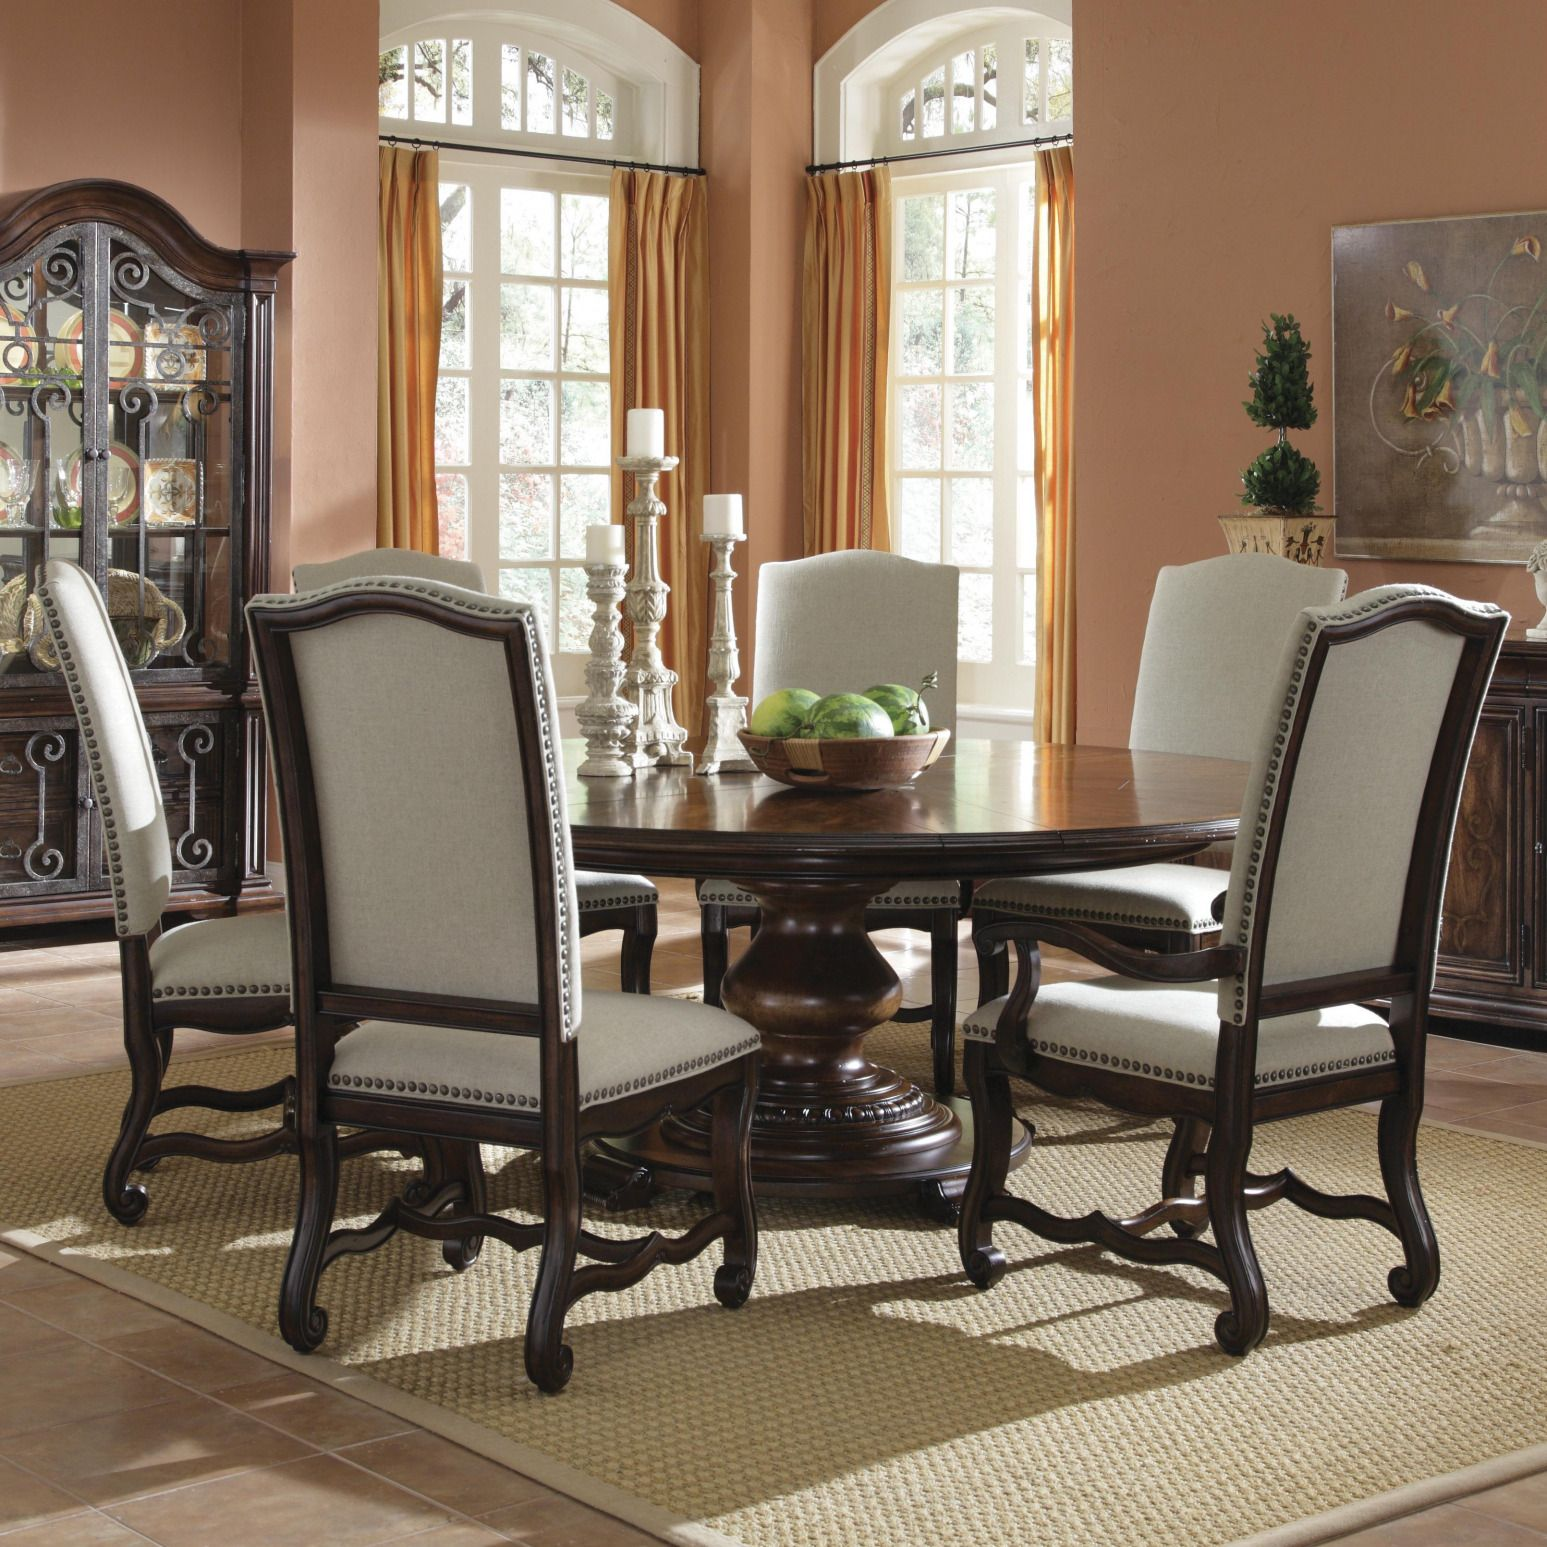 Round Formal Dining Room Tables: Pin By Annora On Round End Table